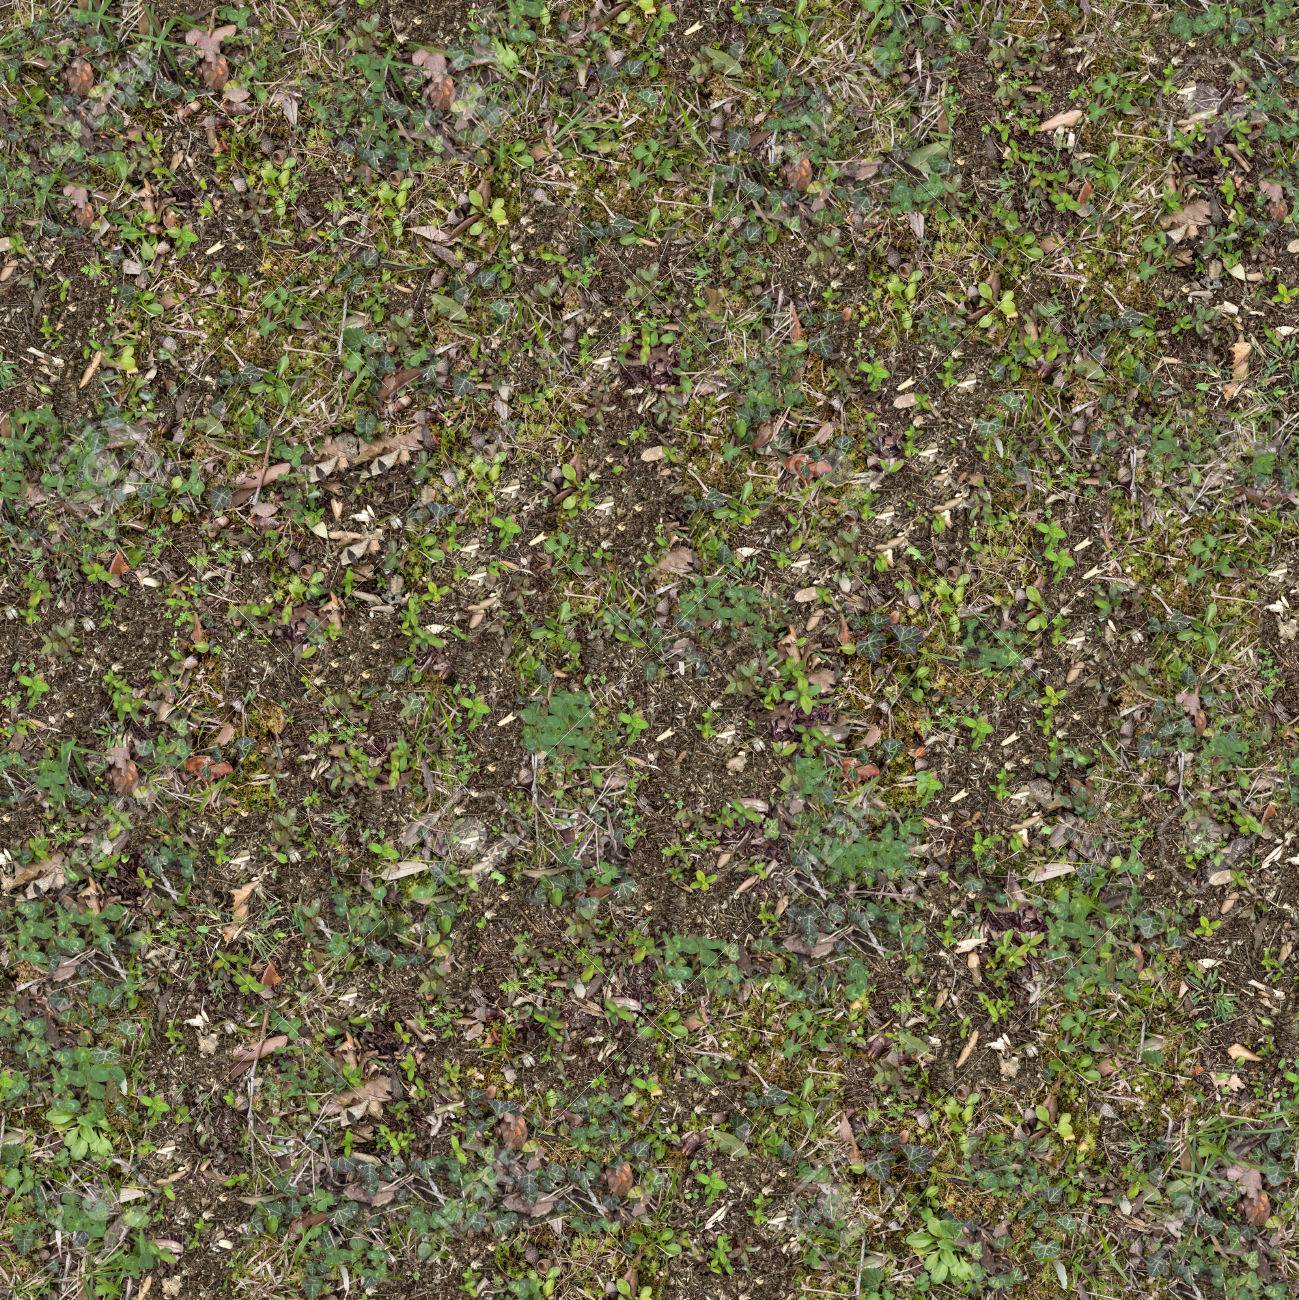 Young Green Plant on Soil. Seamless Tileable Texture. - 33574311